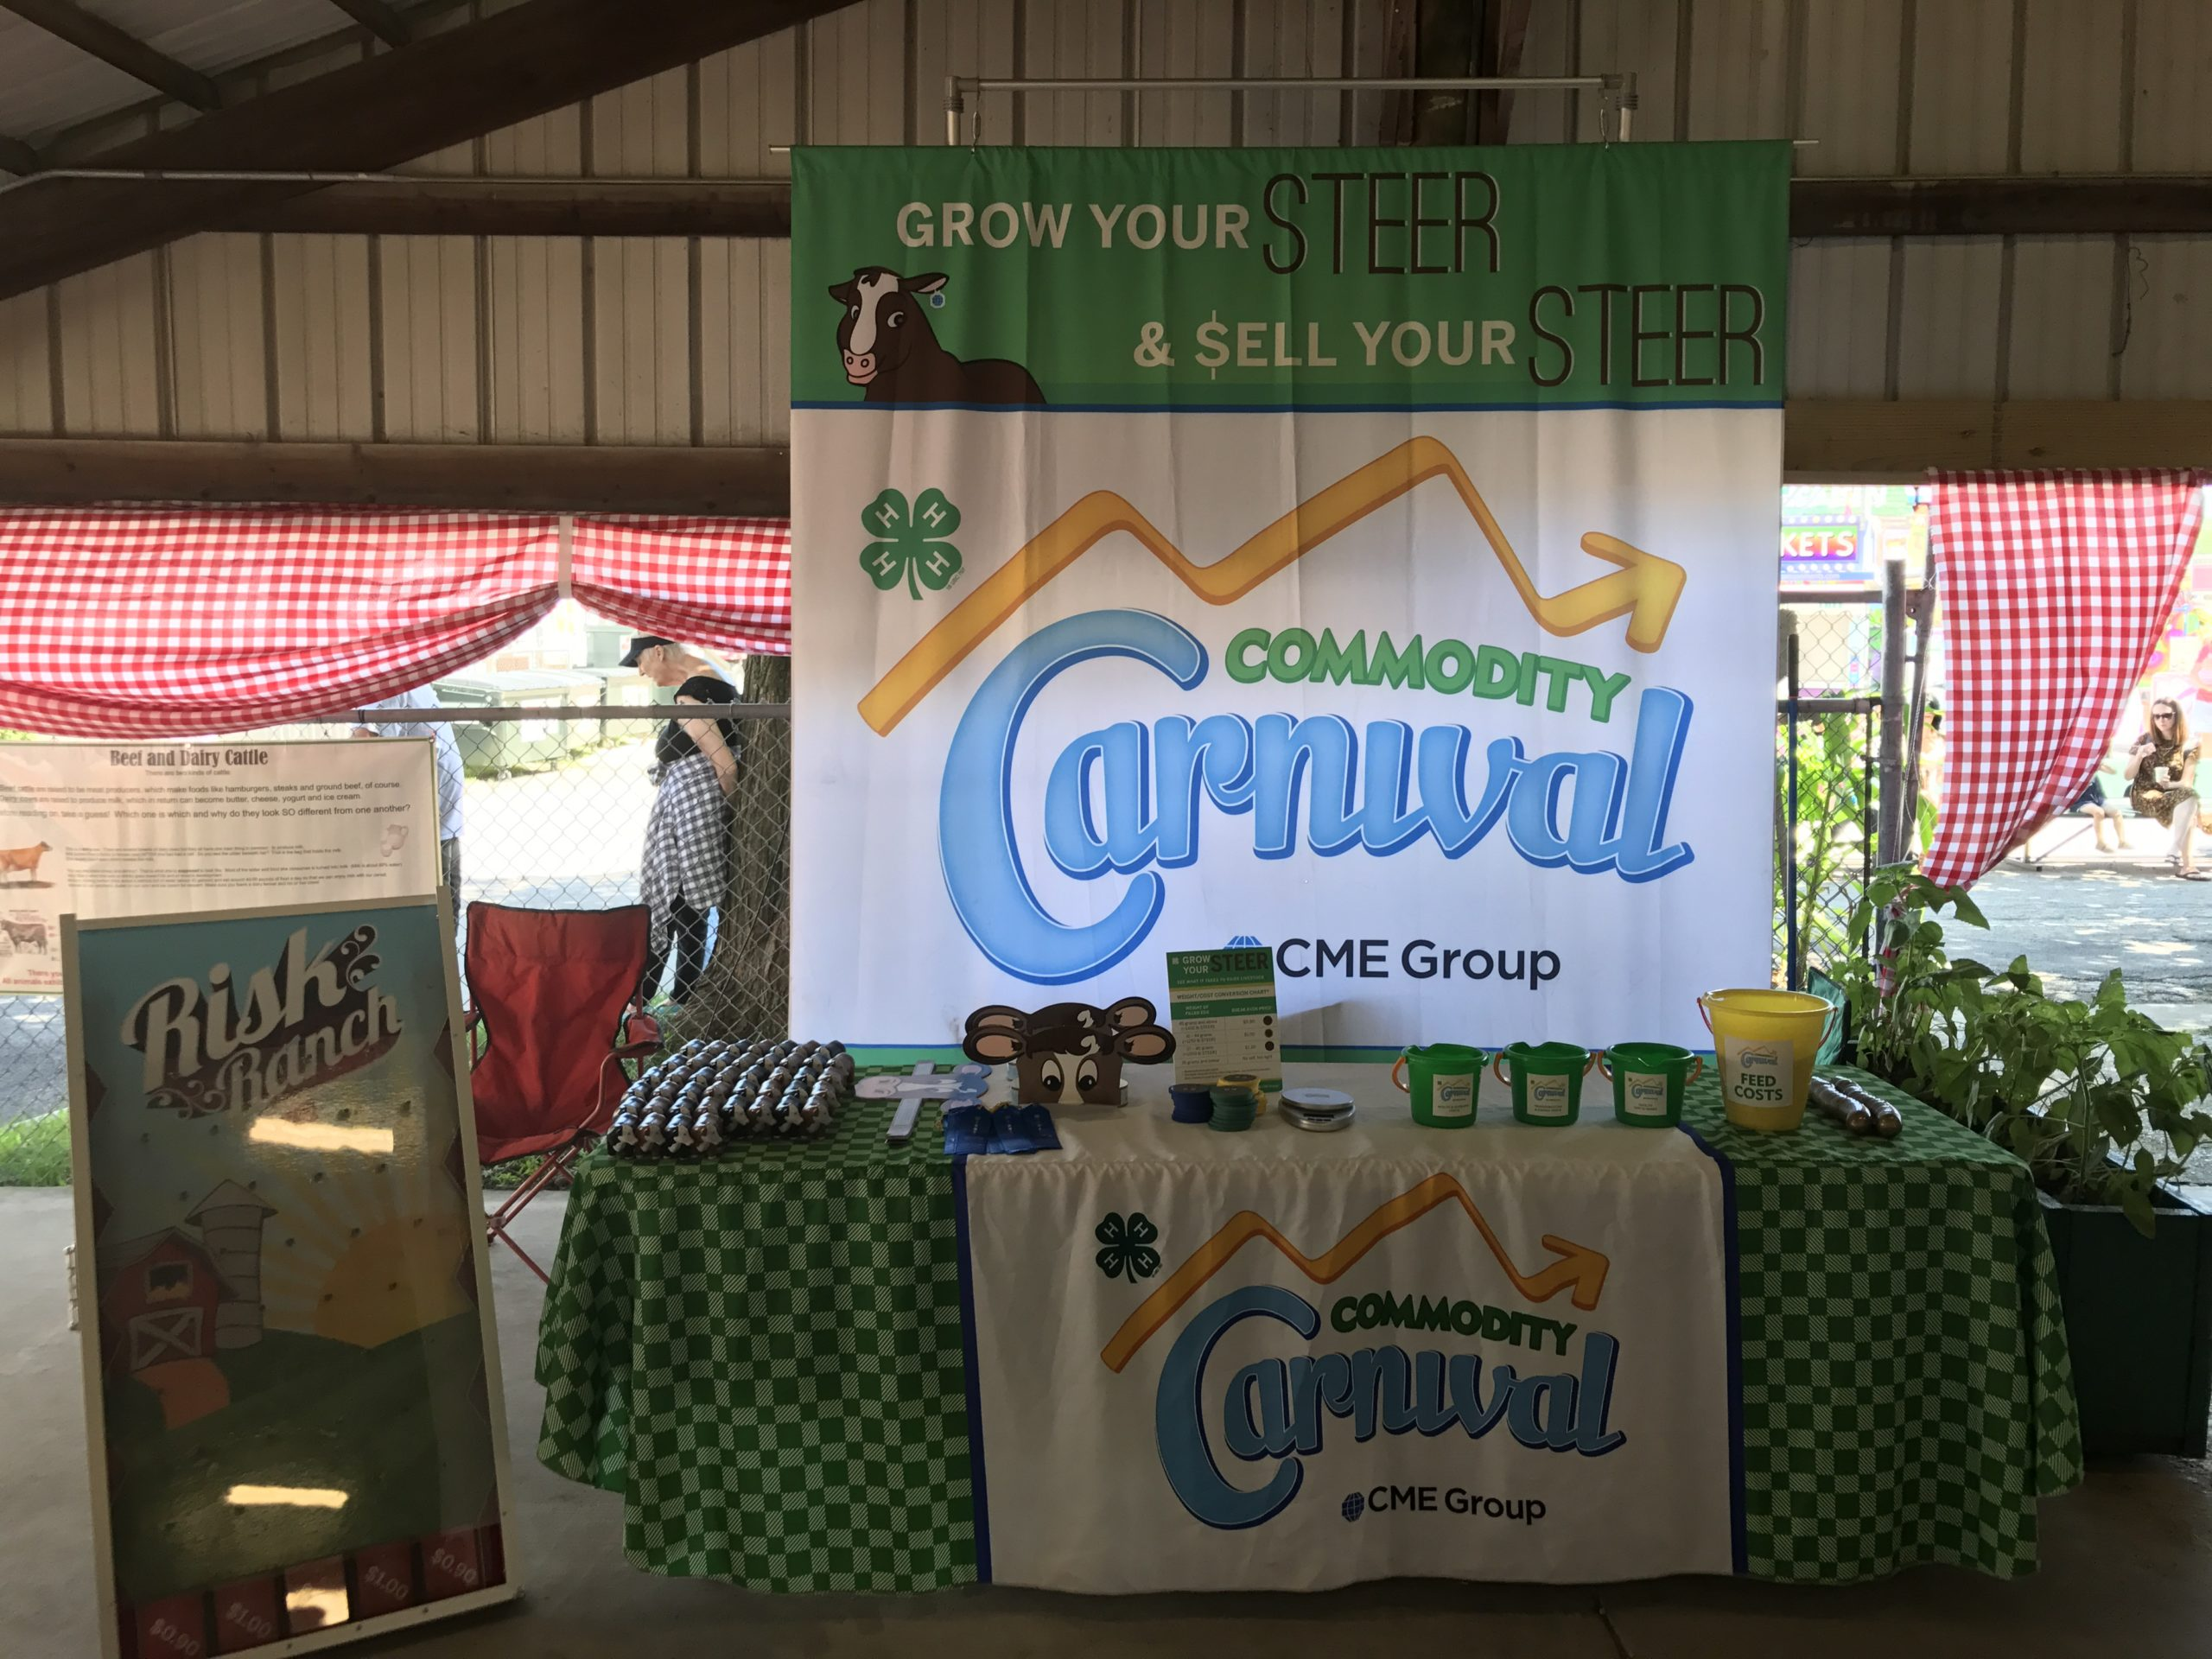 Commodity Carnival At the Effingham County Fair Today